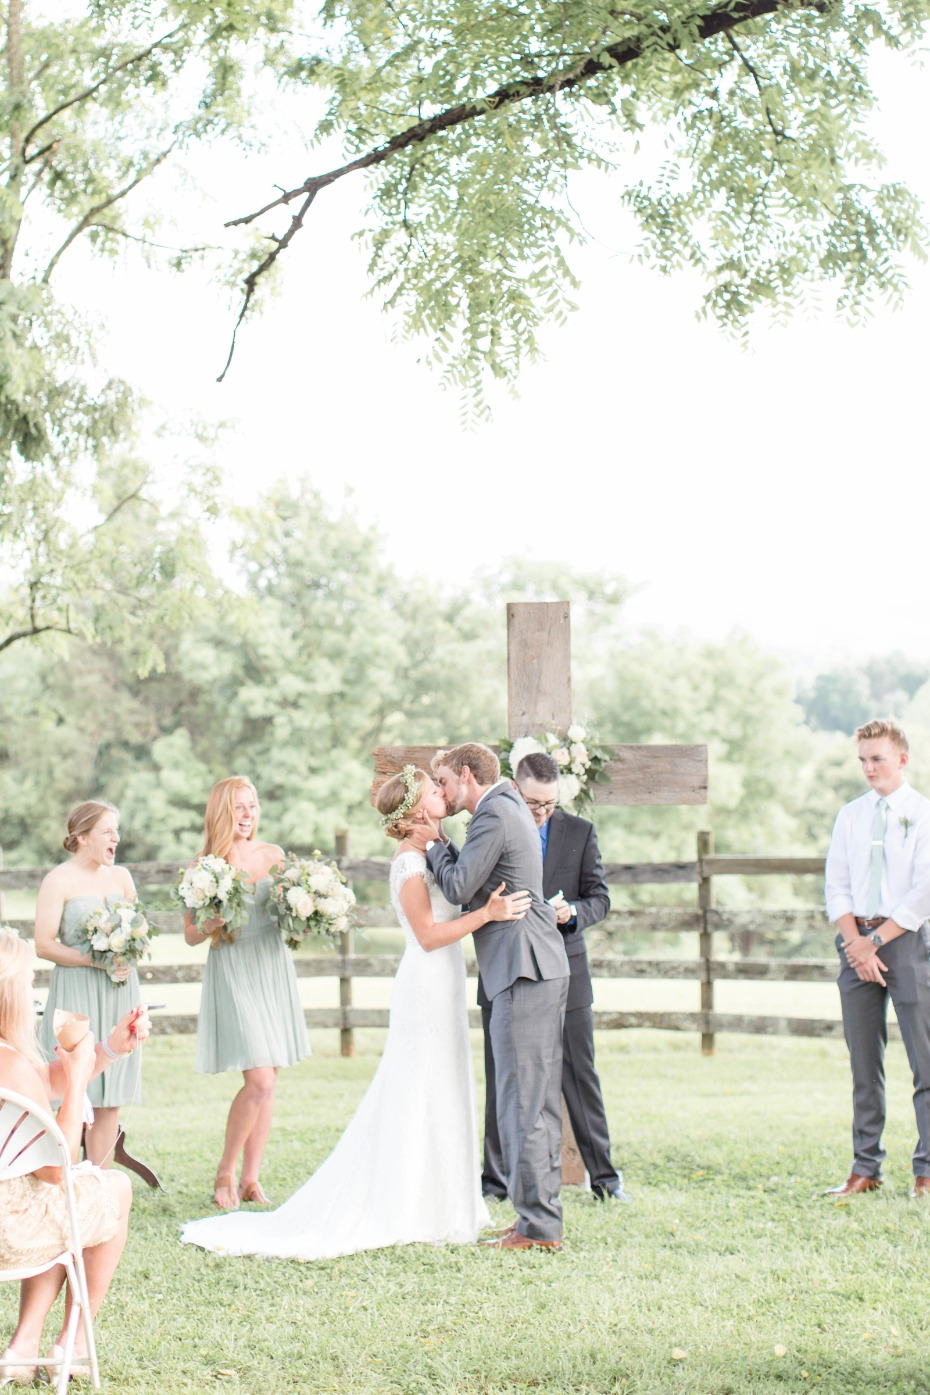 Wedding ceremony idea - get married under a tree in front of a wooden cross